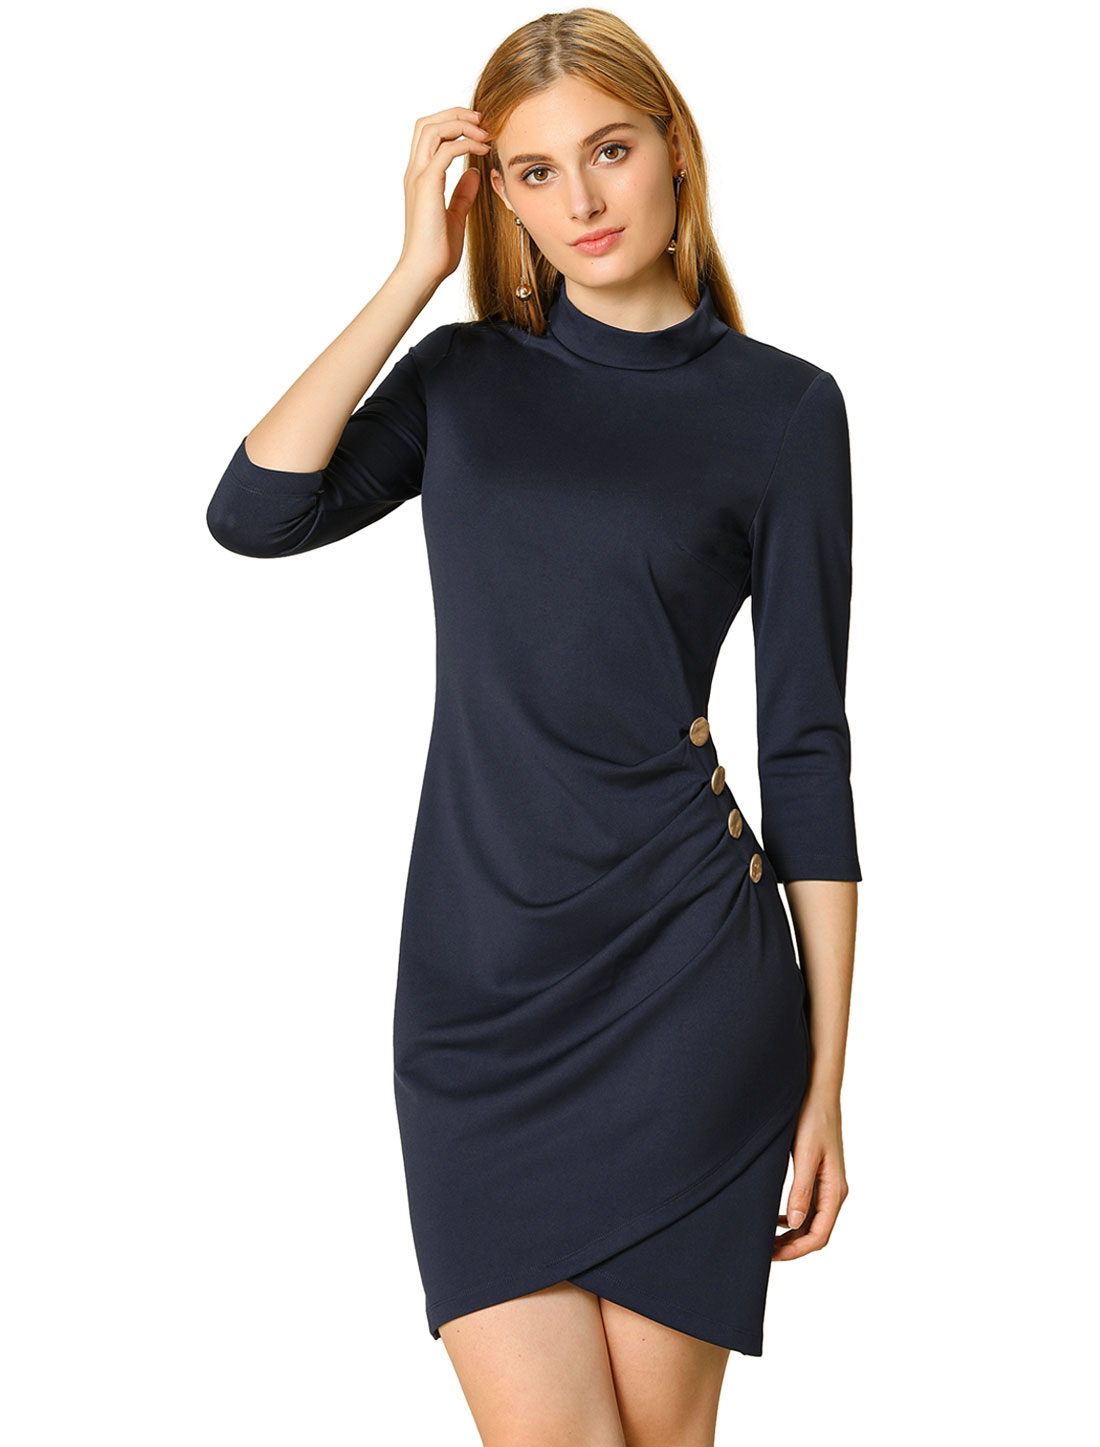 Women's Work 3/4 Sleeve Ruched Stretchy Bodycon Short Dress Navy blue L